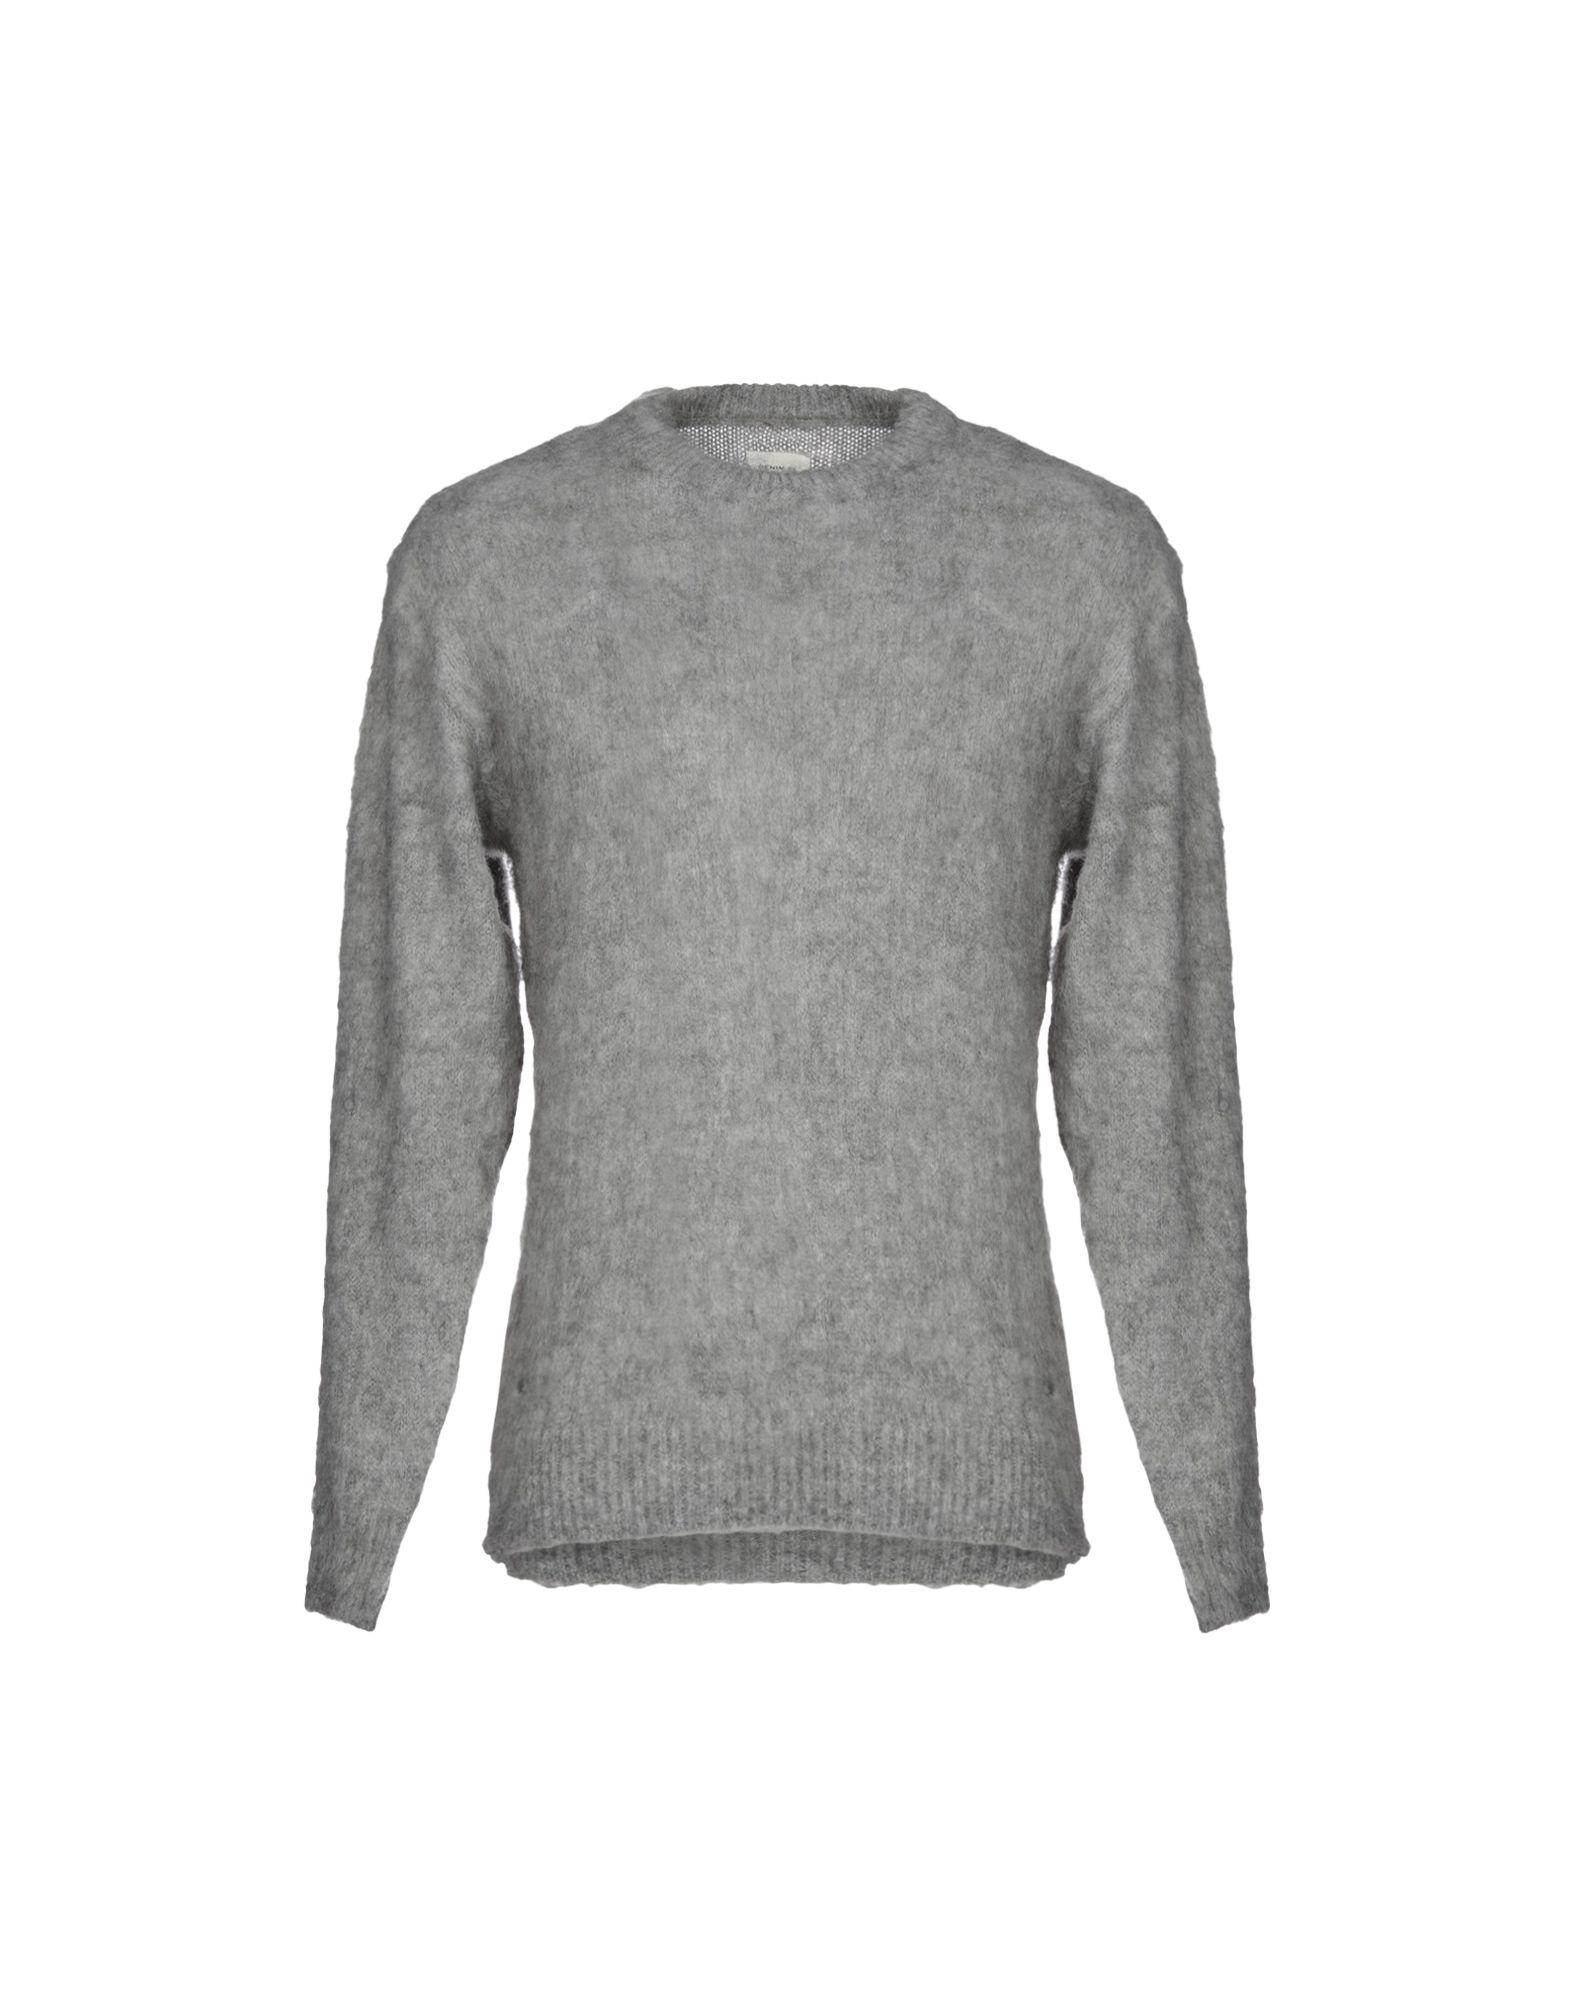 8273bbbf23ad Denim by Vanquish & Fragment Jumper in Gray for Men - Lyst